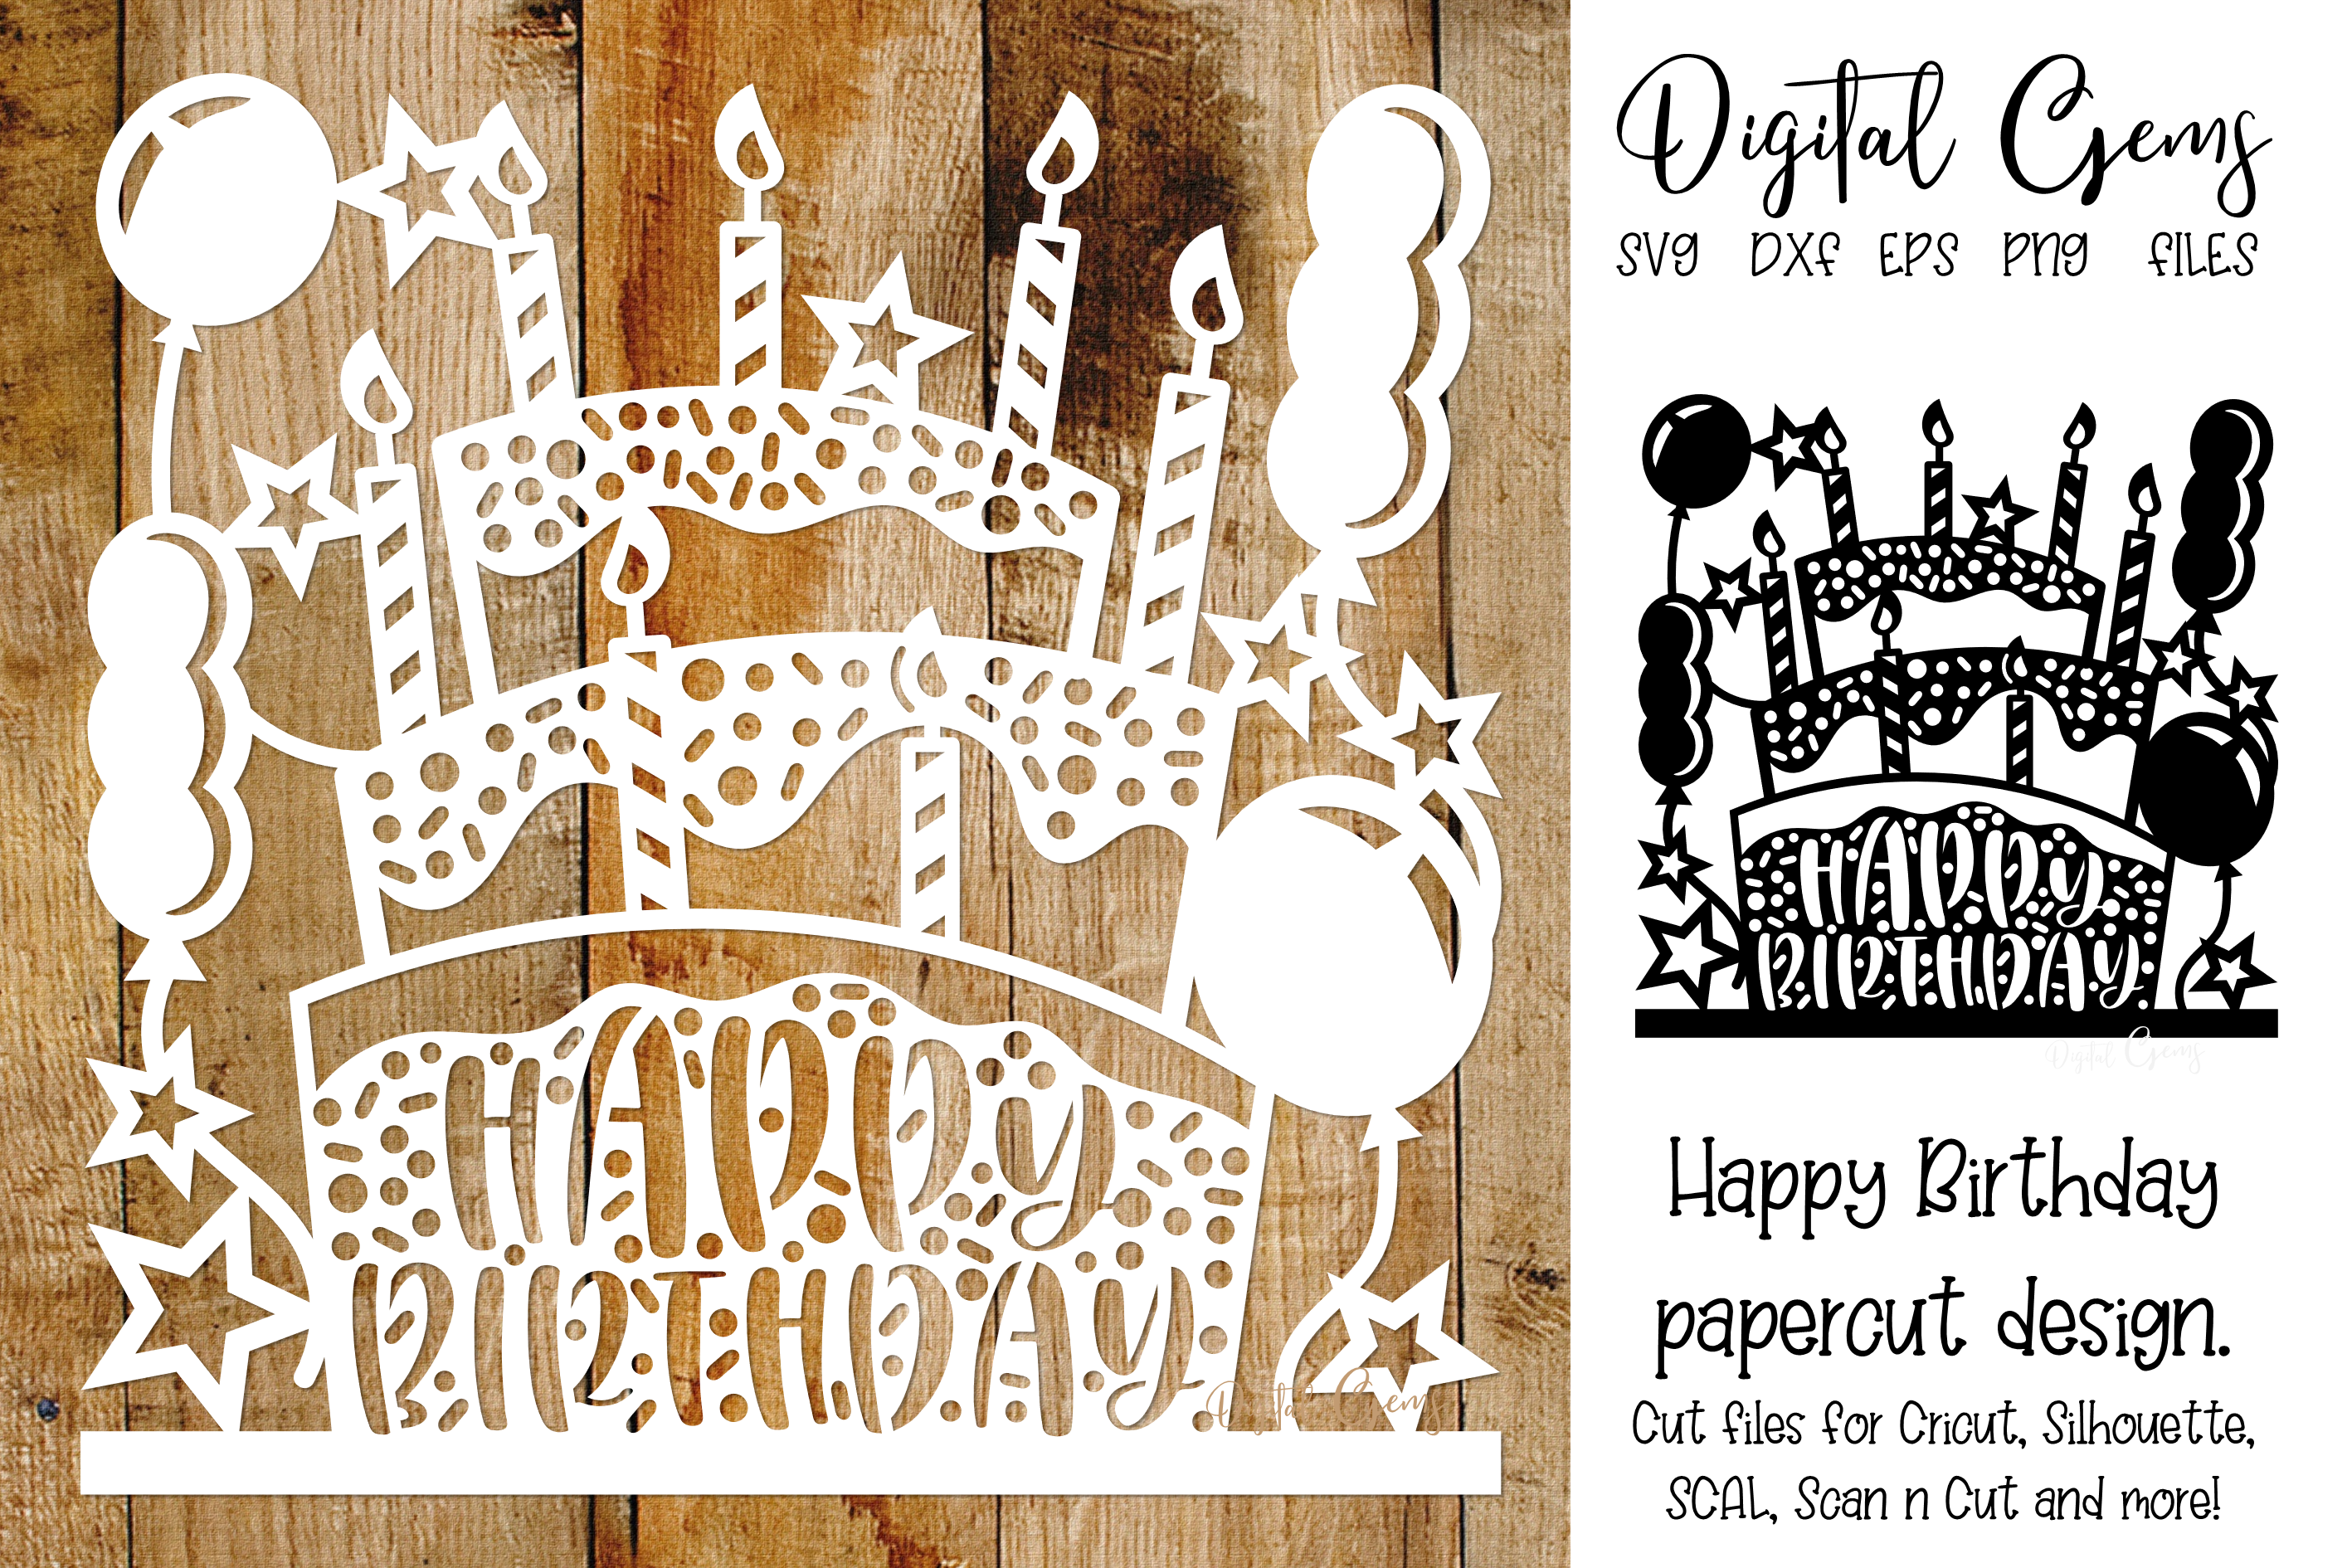 Download Free Happy Birthday Paper Cut Design Graphic By Digital Gems Creative Fabrica for Cricut Explore, Silhouette and other cutting machines.